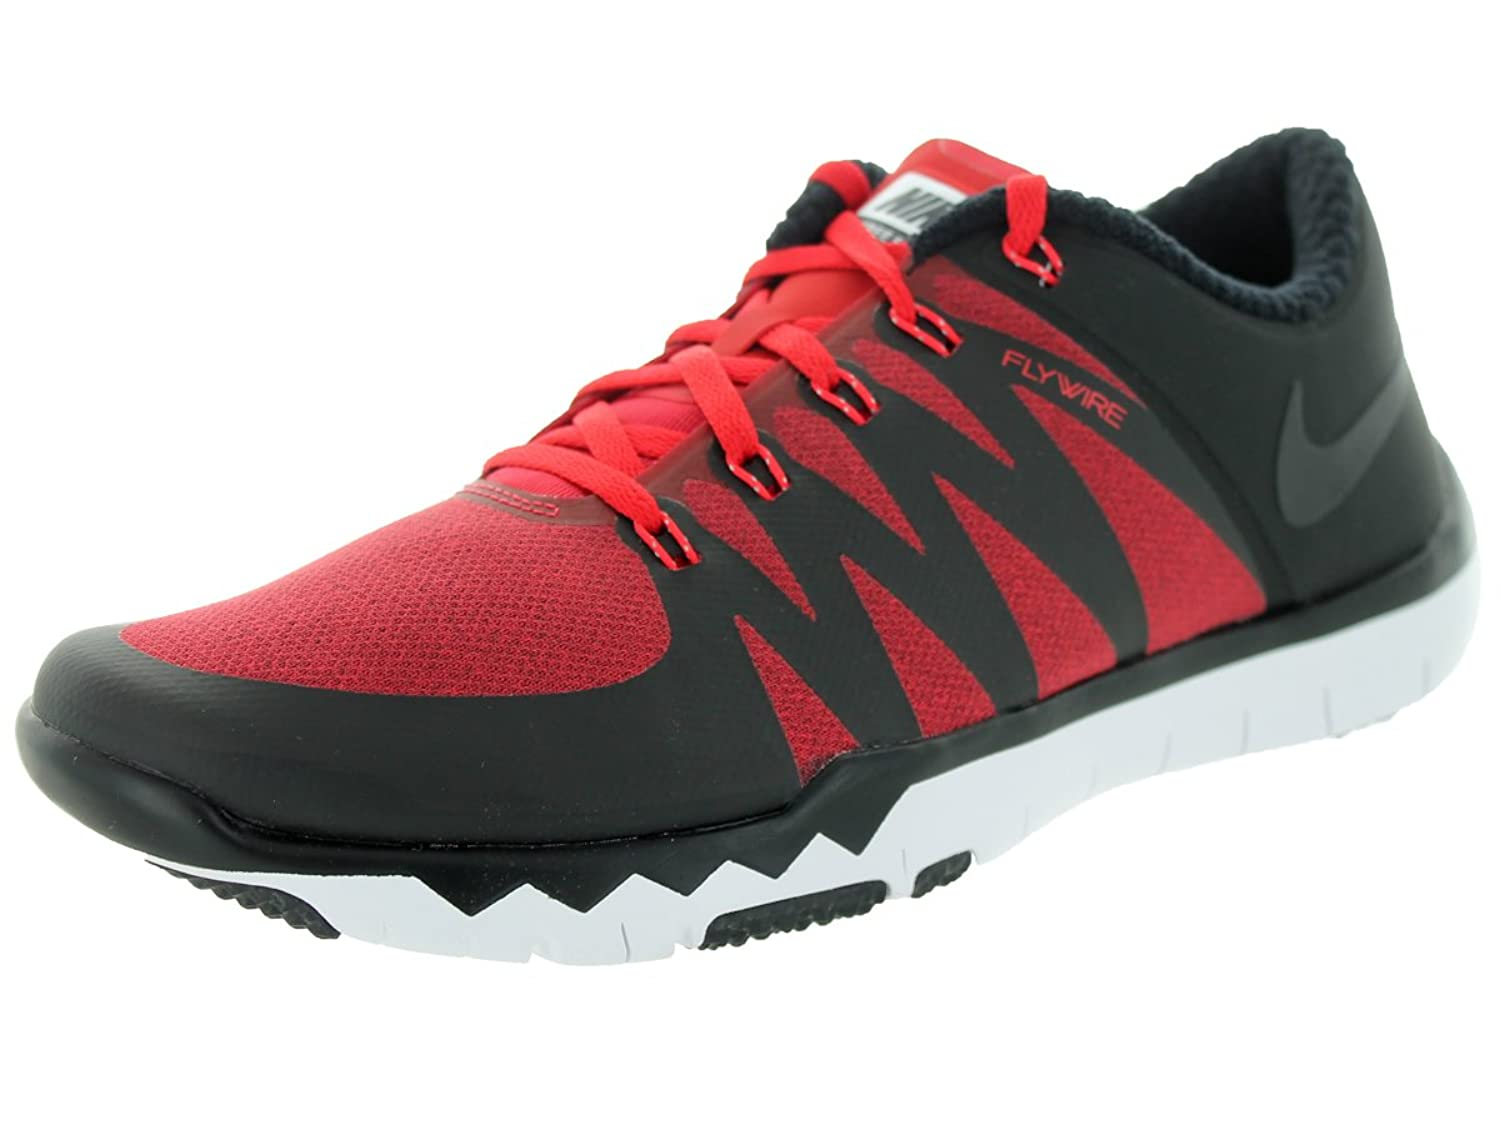 lowest price c81c3 ba95d Amazon.com   Nike Free Trainer 5.0 V6 AMP Mens Black Red Silver Running  Sneakers   Running